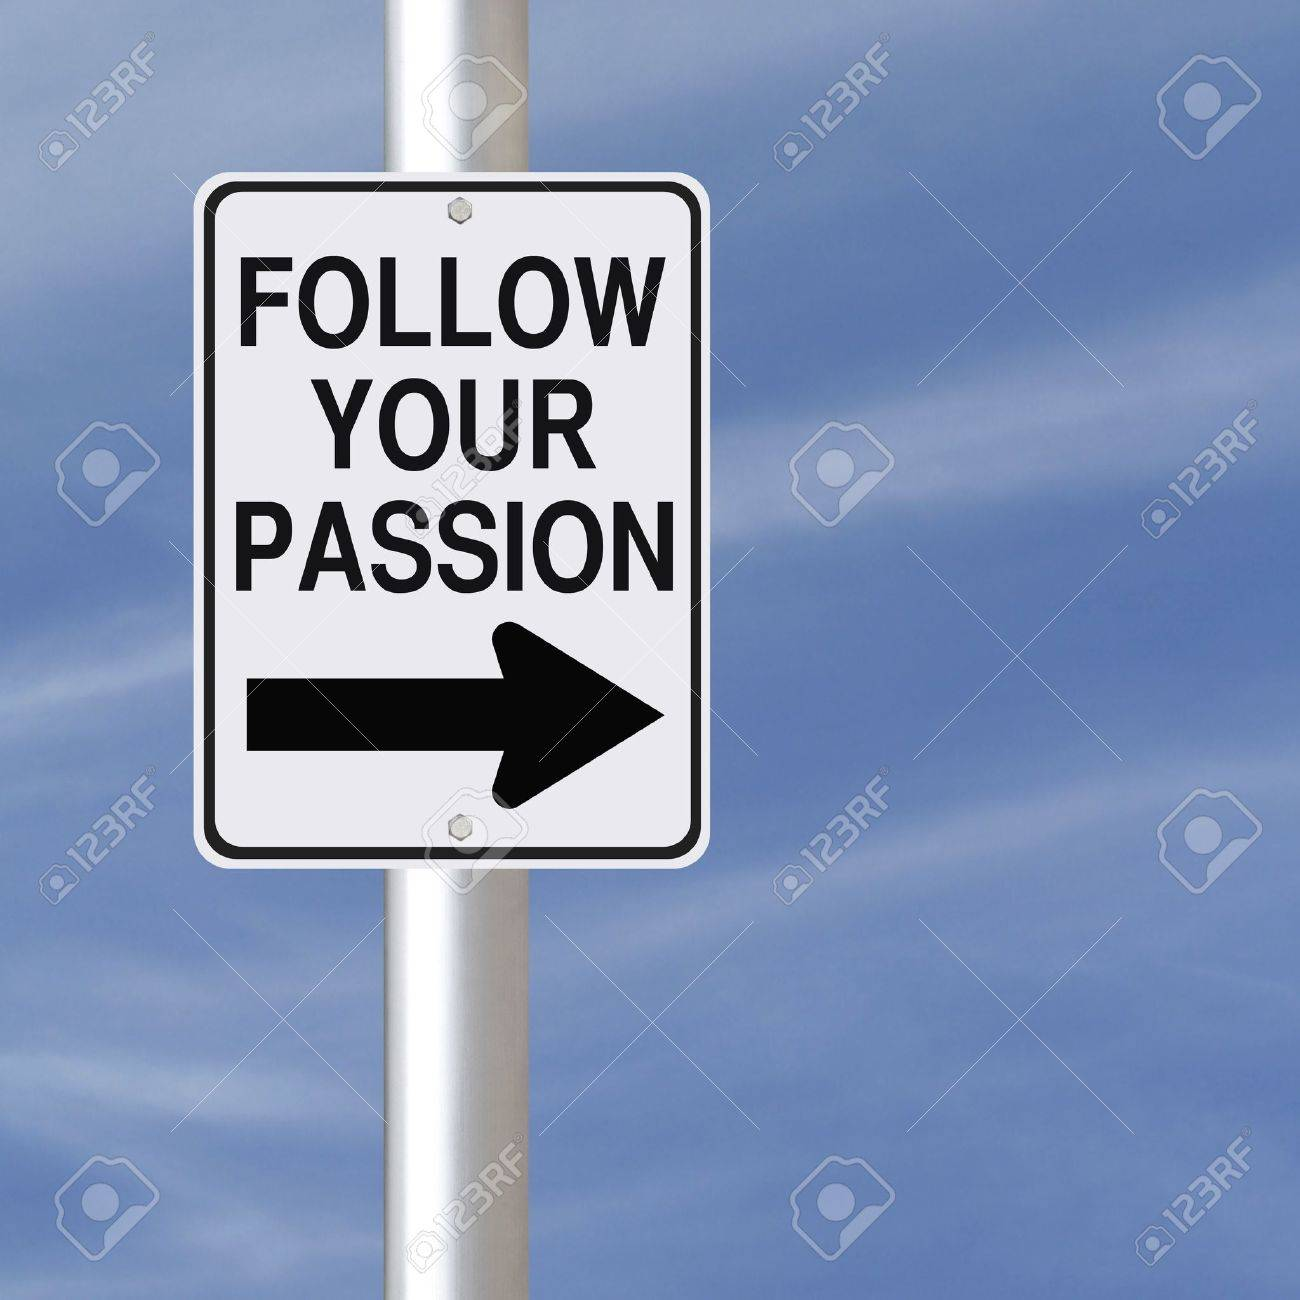 a road sign a career or personal advice stock photo picture a road sign a career or personal advice stock photo 19499673